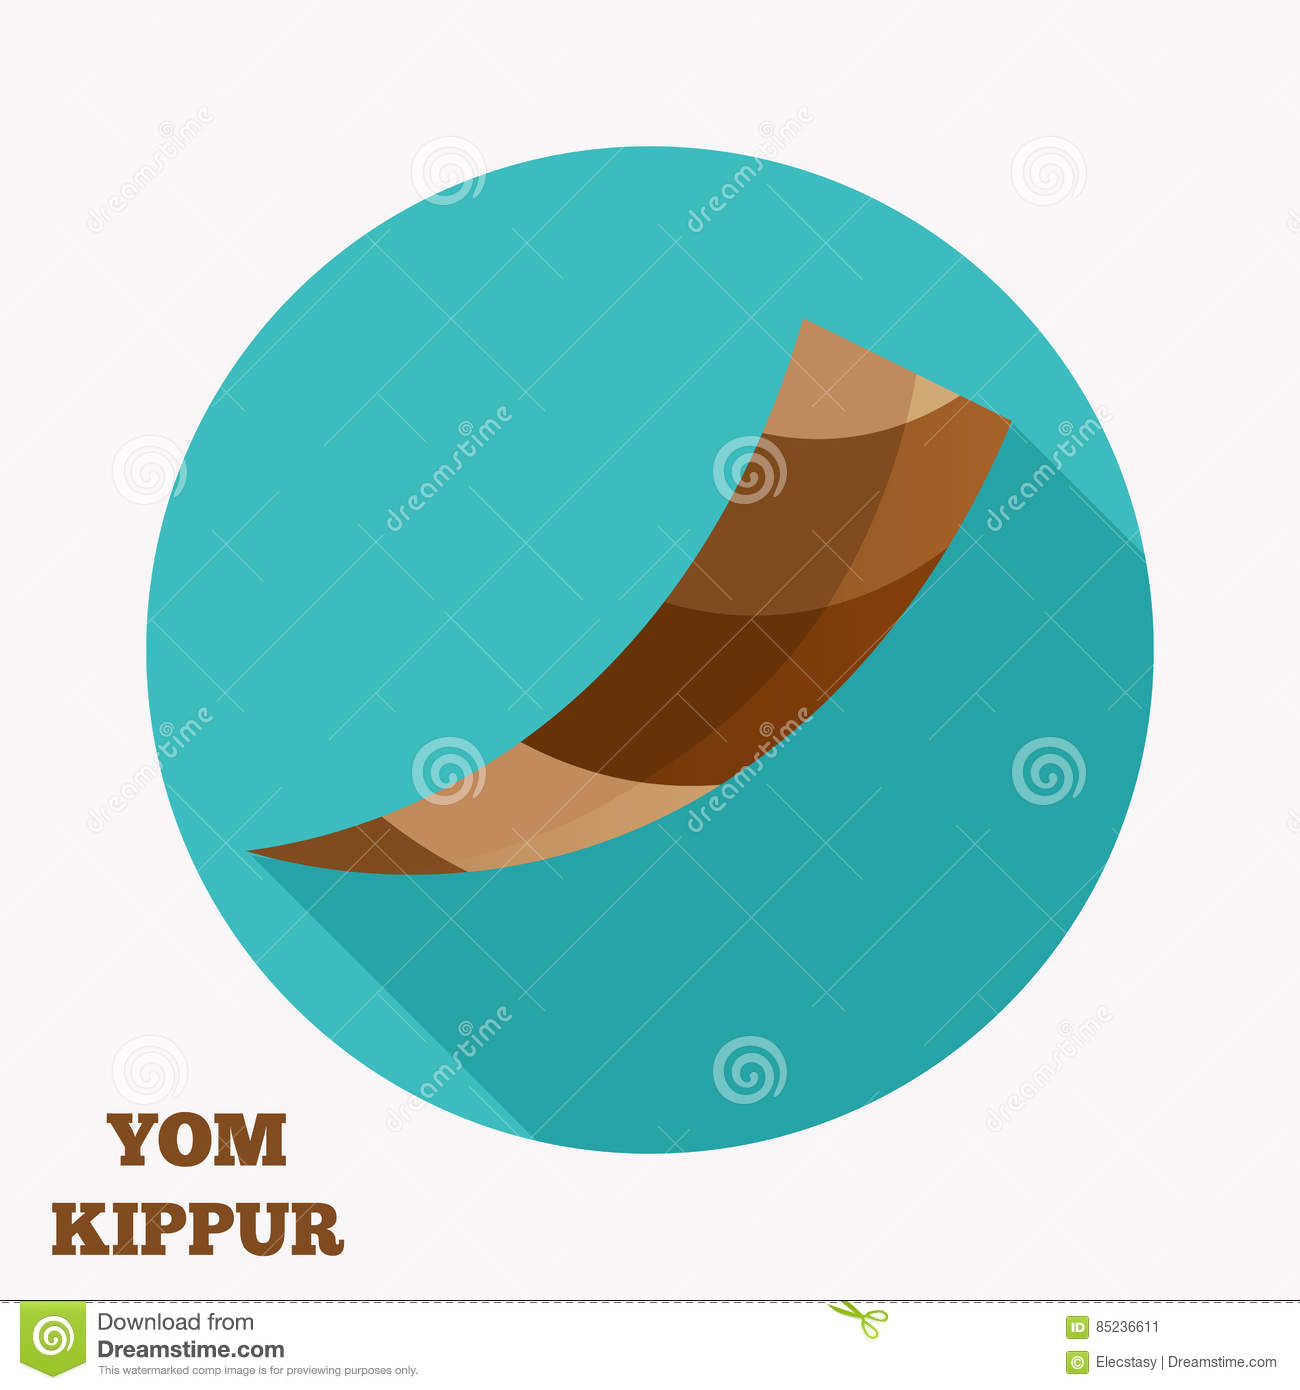 Yom Kippur Shofar Flat Icon Stock Vector Illustration Of Flat